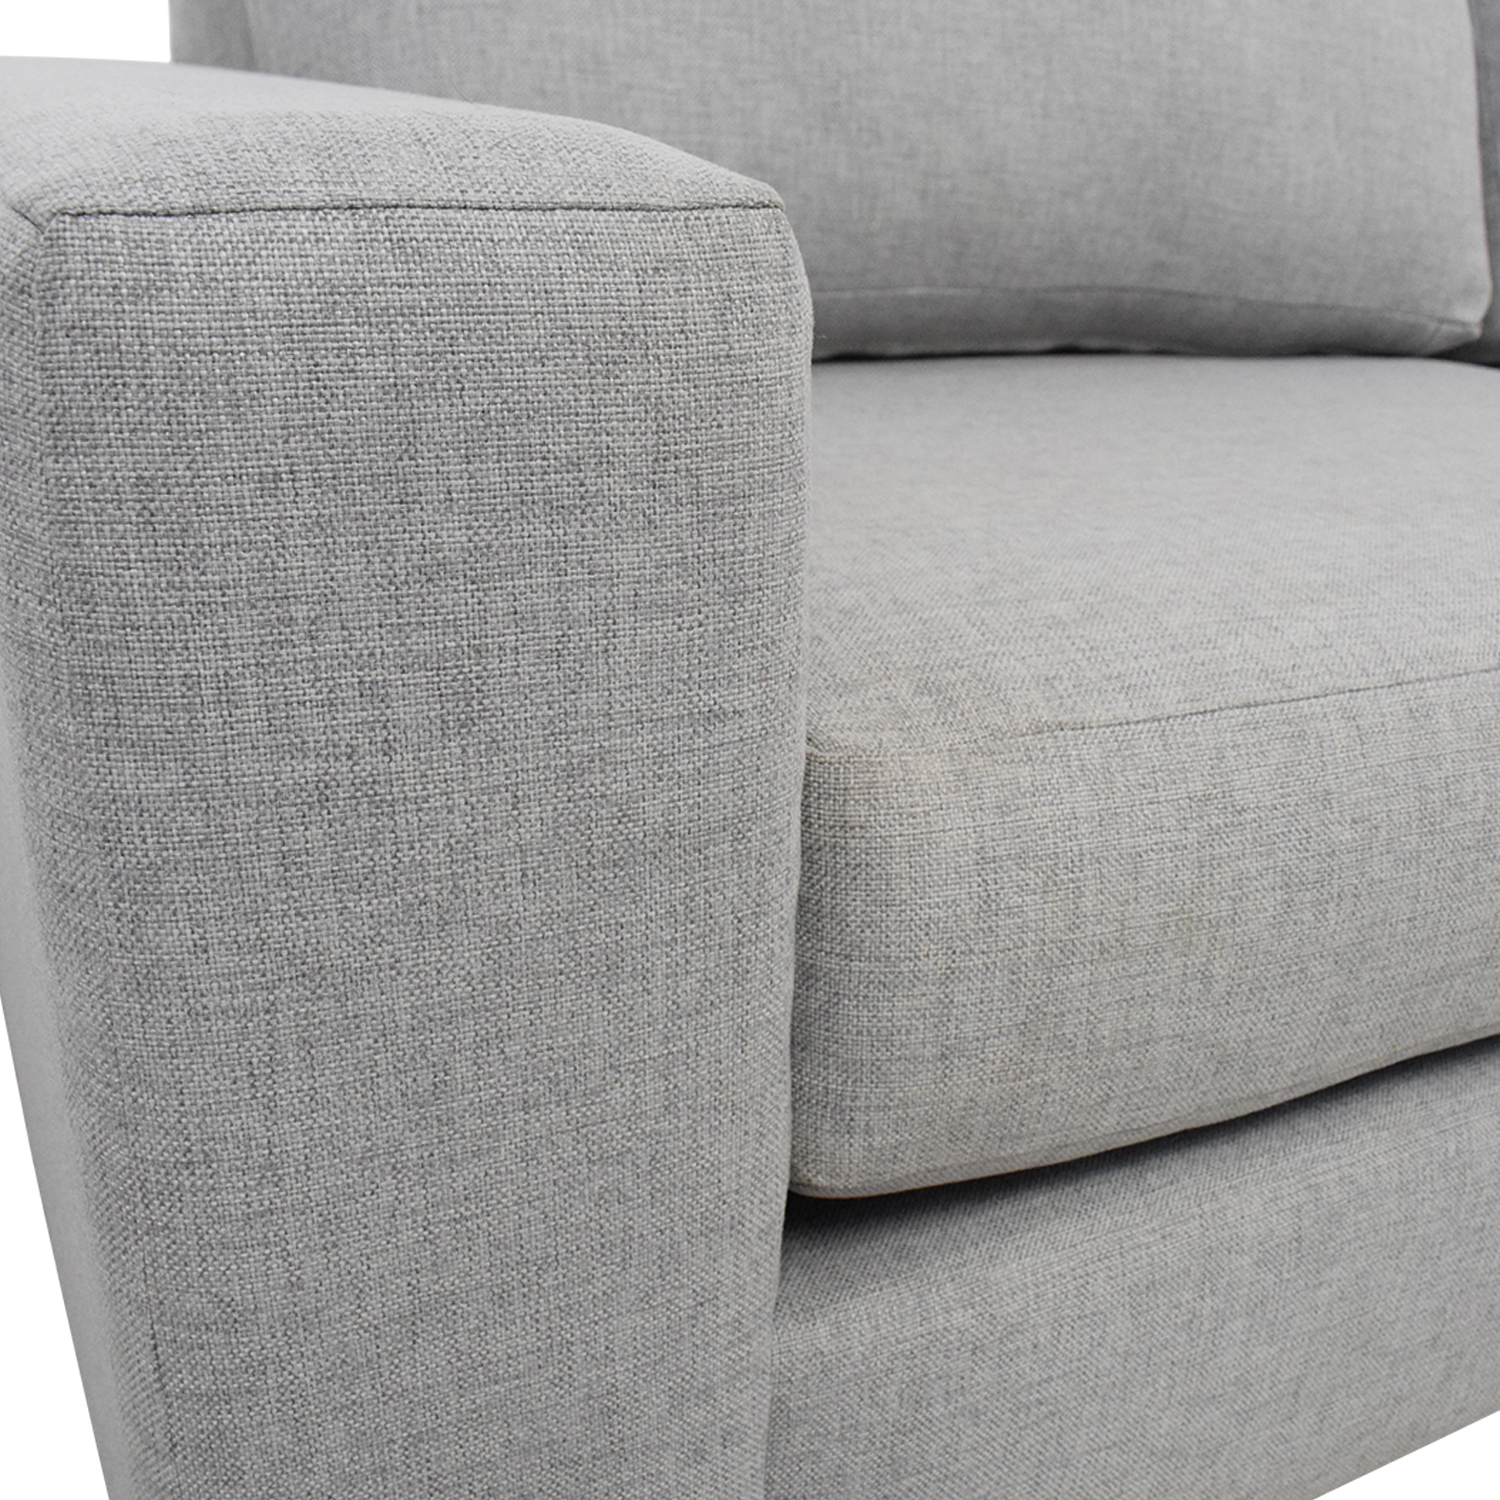 Peachy 65 Off West Elm West Elm Urban Chaise Sectional Sofa Sofas Gmtry Best Dining Table And Chair Ideas Images Gmtryco